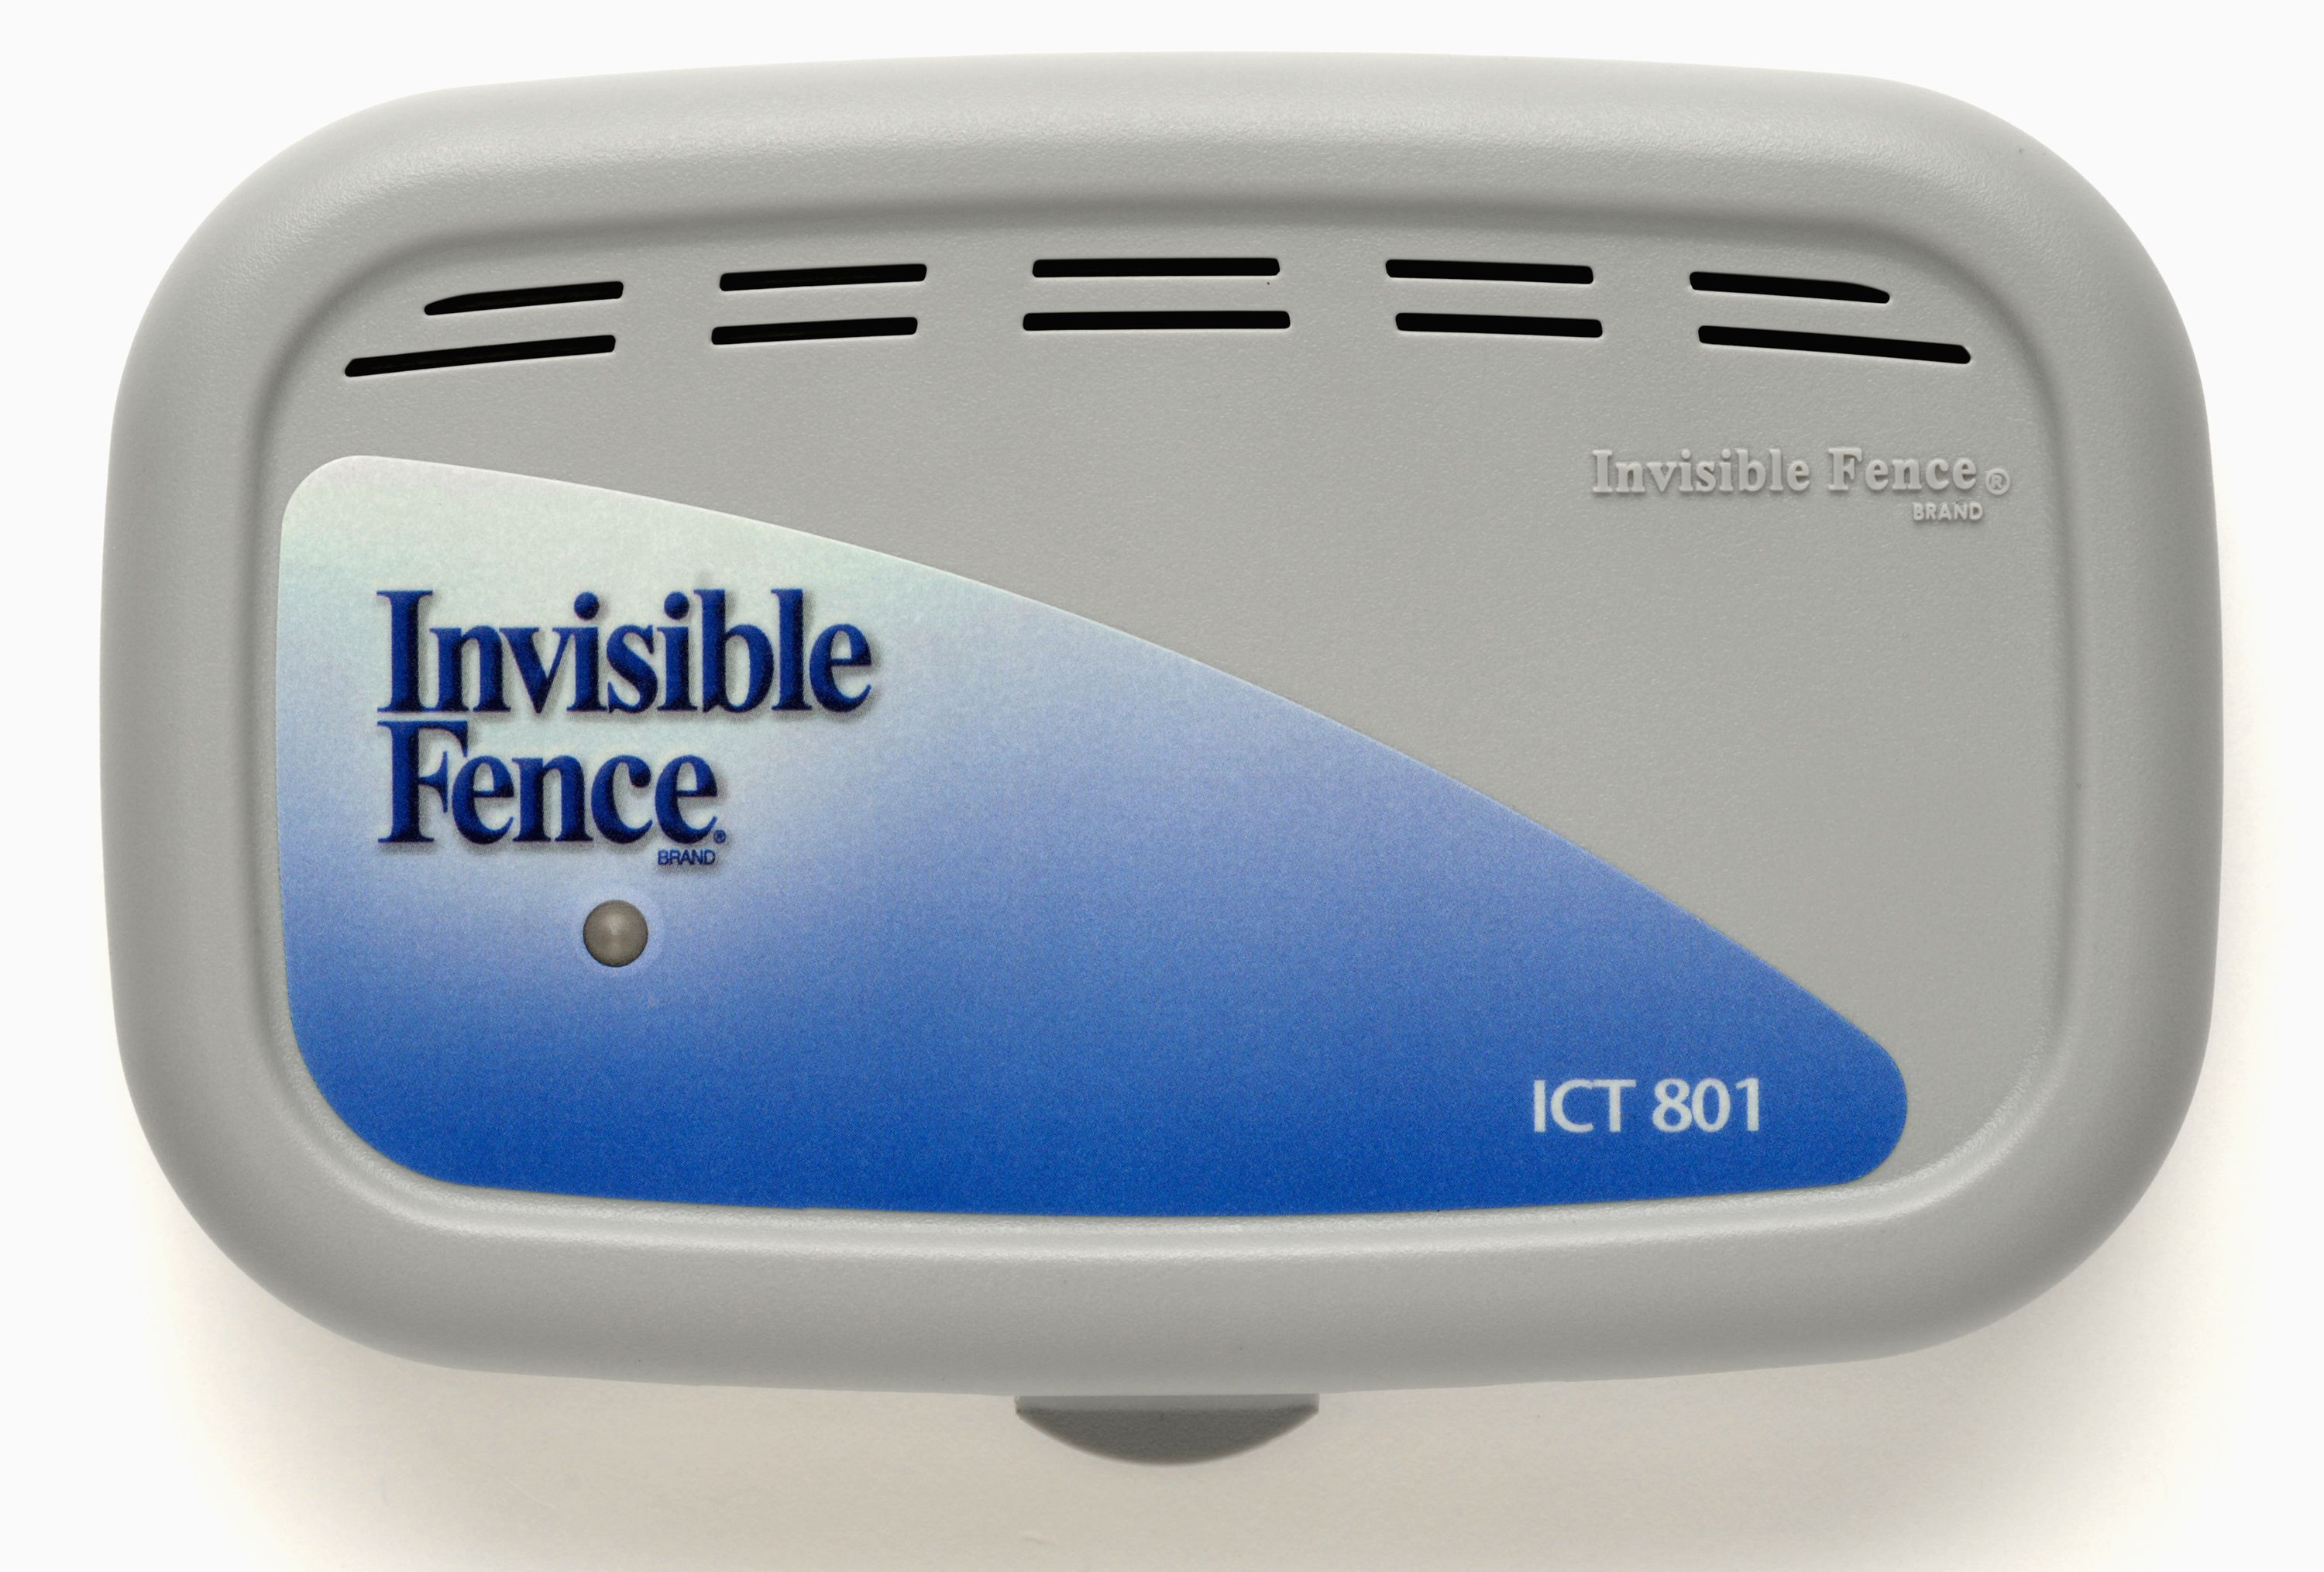 Transmitter Invisible fence, Your pet, Transmitter